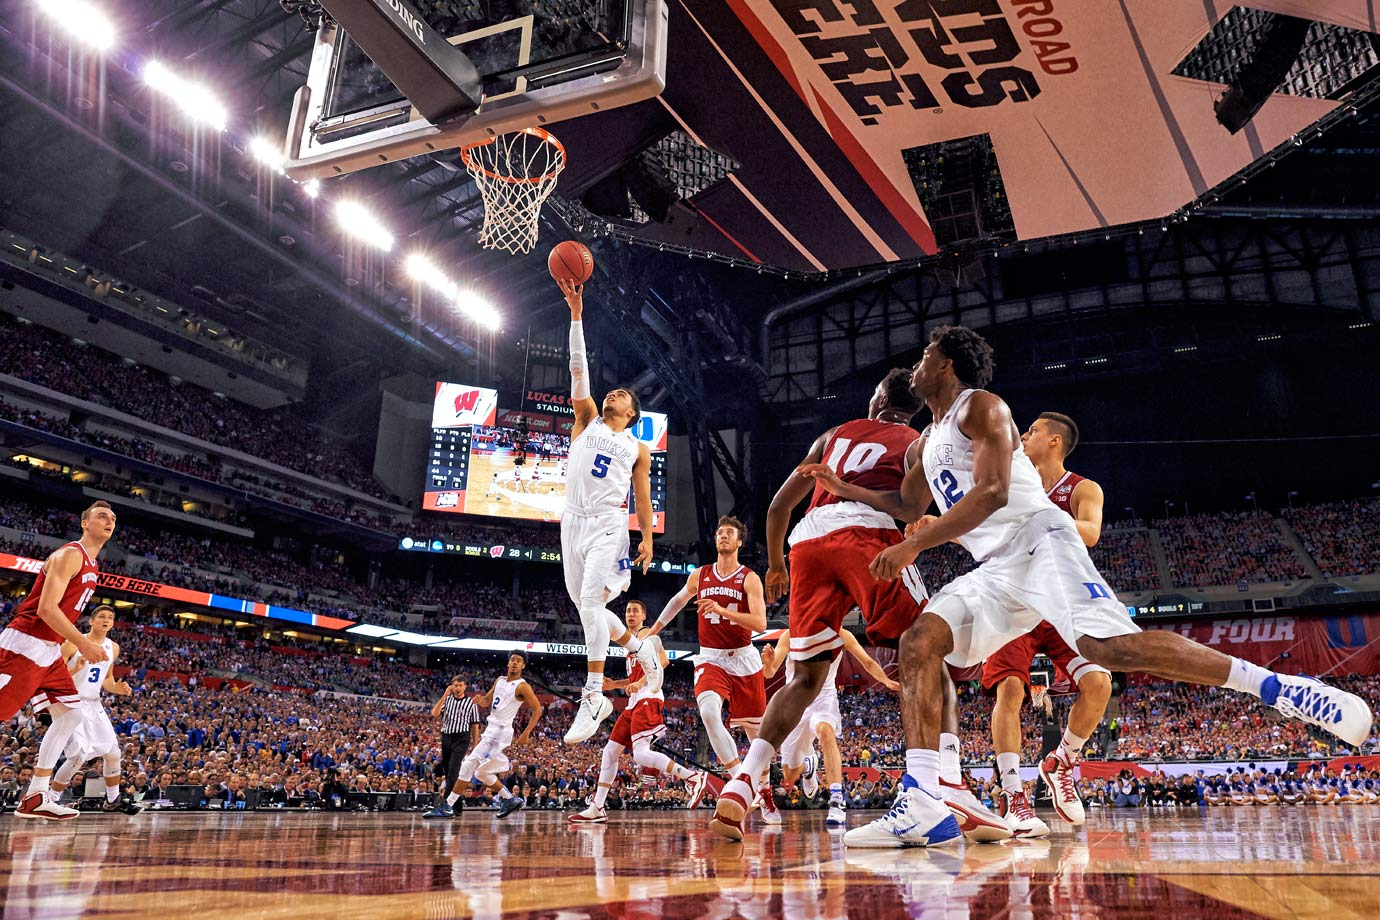 Tyus Jones shoots a layup for two of his 23 points. The Duke freshman was named the Most Outstanding Player of the Final Four.